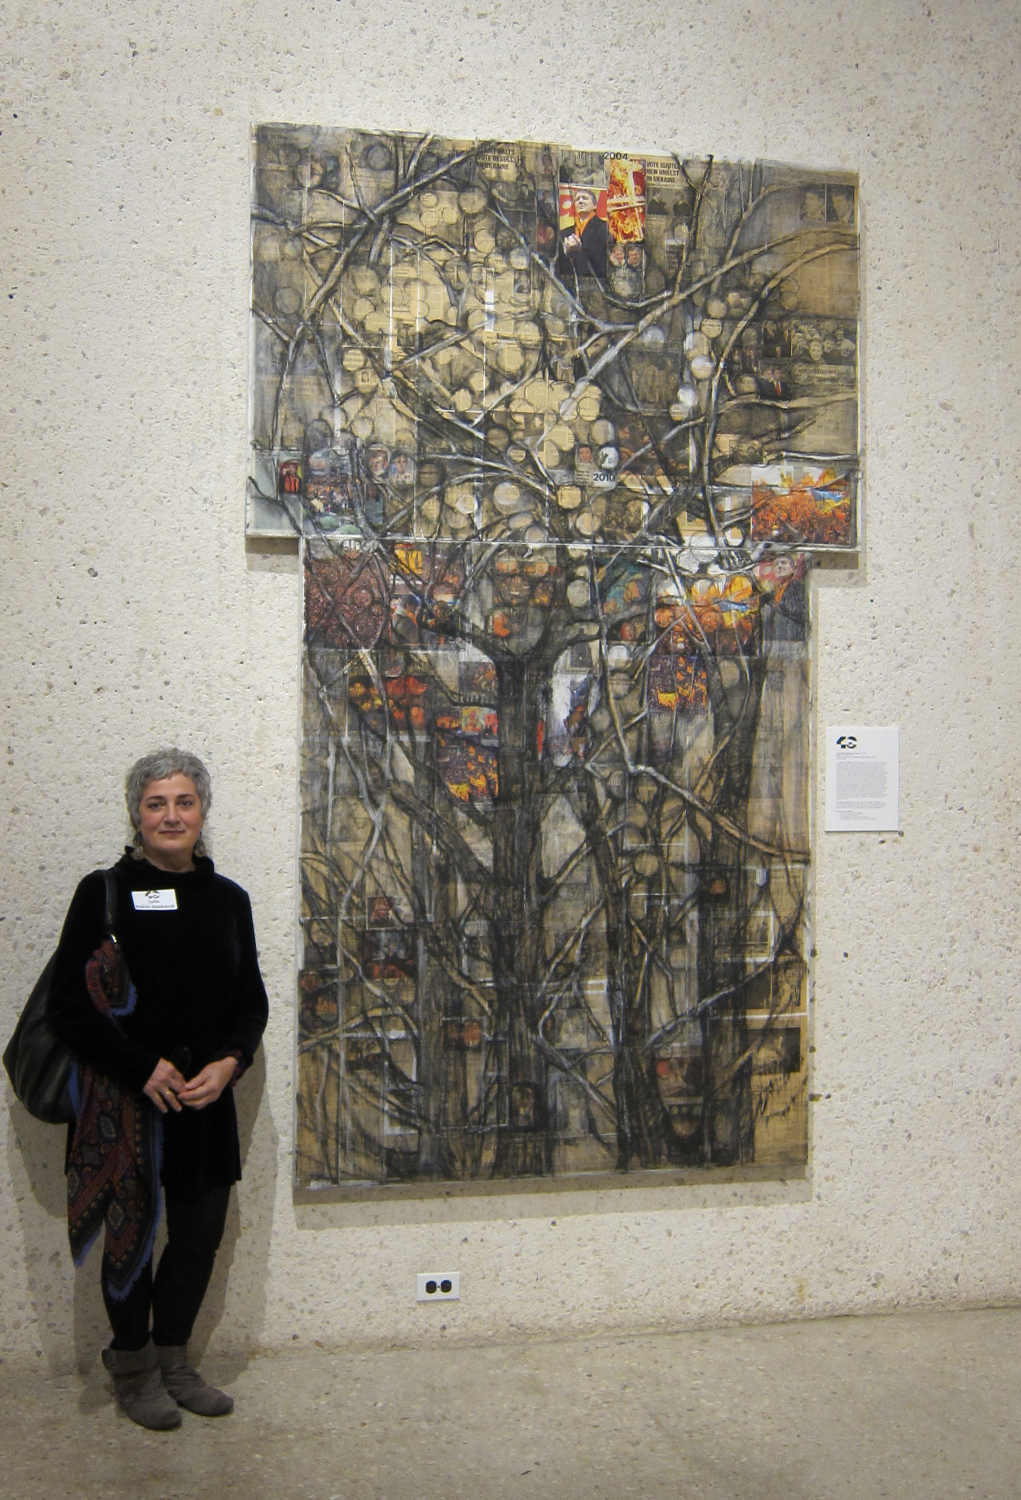 2ad(4)-LBB with Barren Fruit, Art Museum of South Texas 2013.jpg